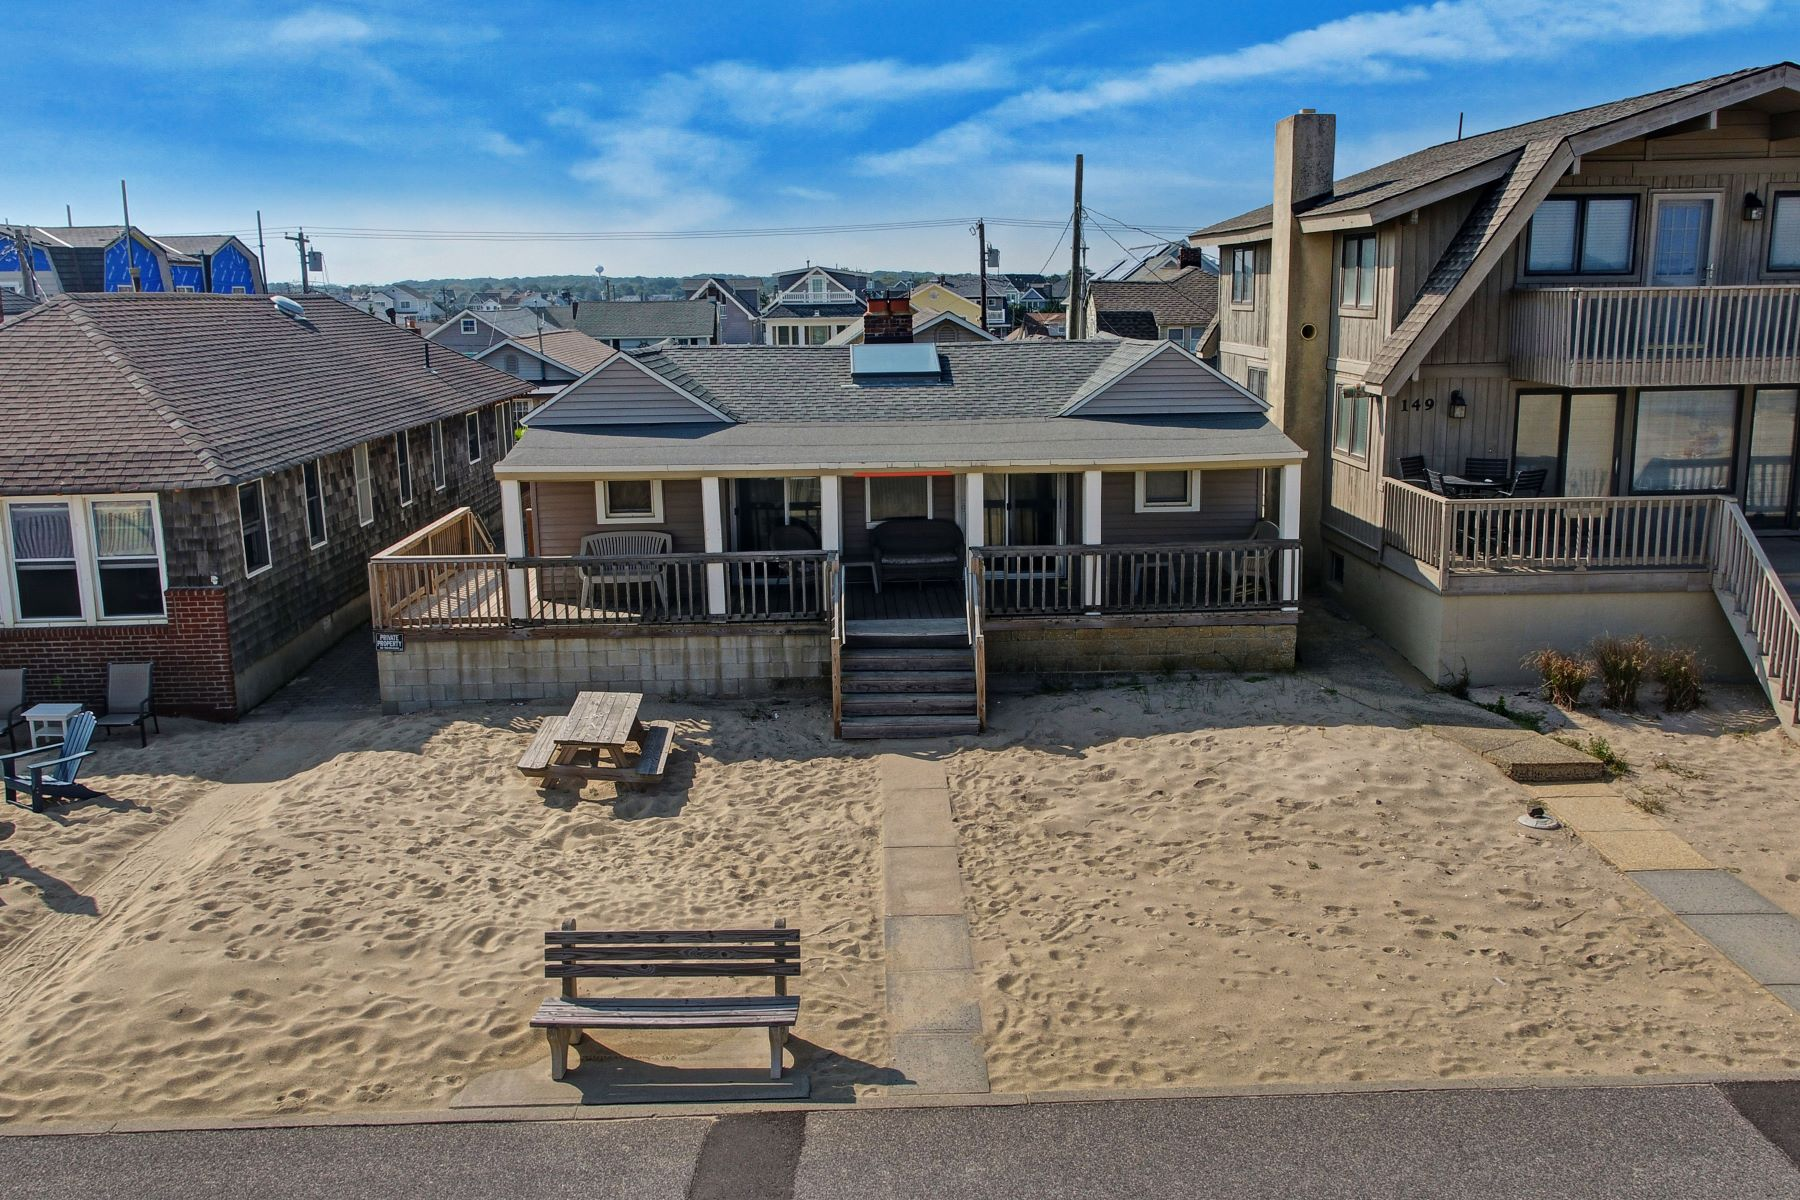 Maison unifamiliale pour l Vente à Beachfront Extraordinary Value 153 Beachfront, Manasquan, New Jersey 08736 États-Unis